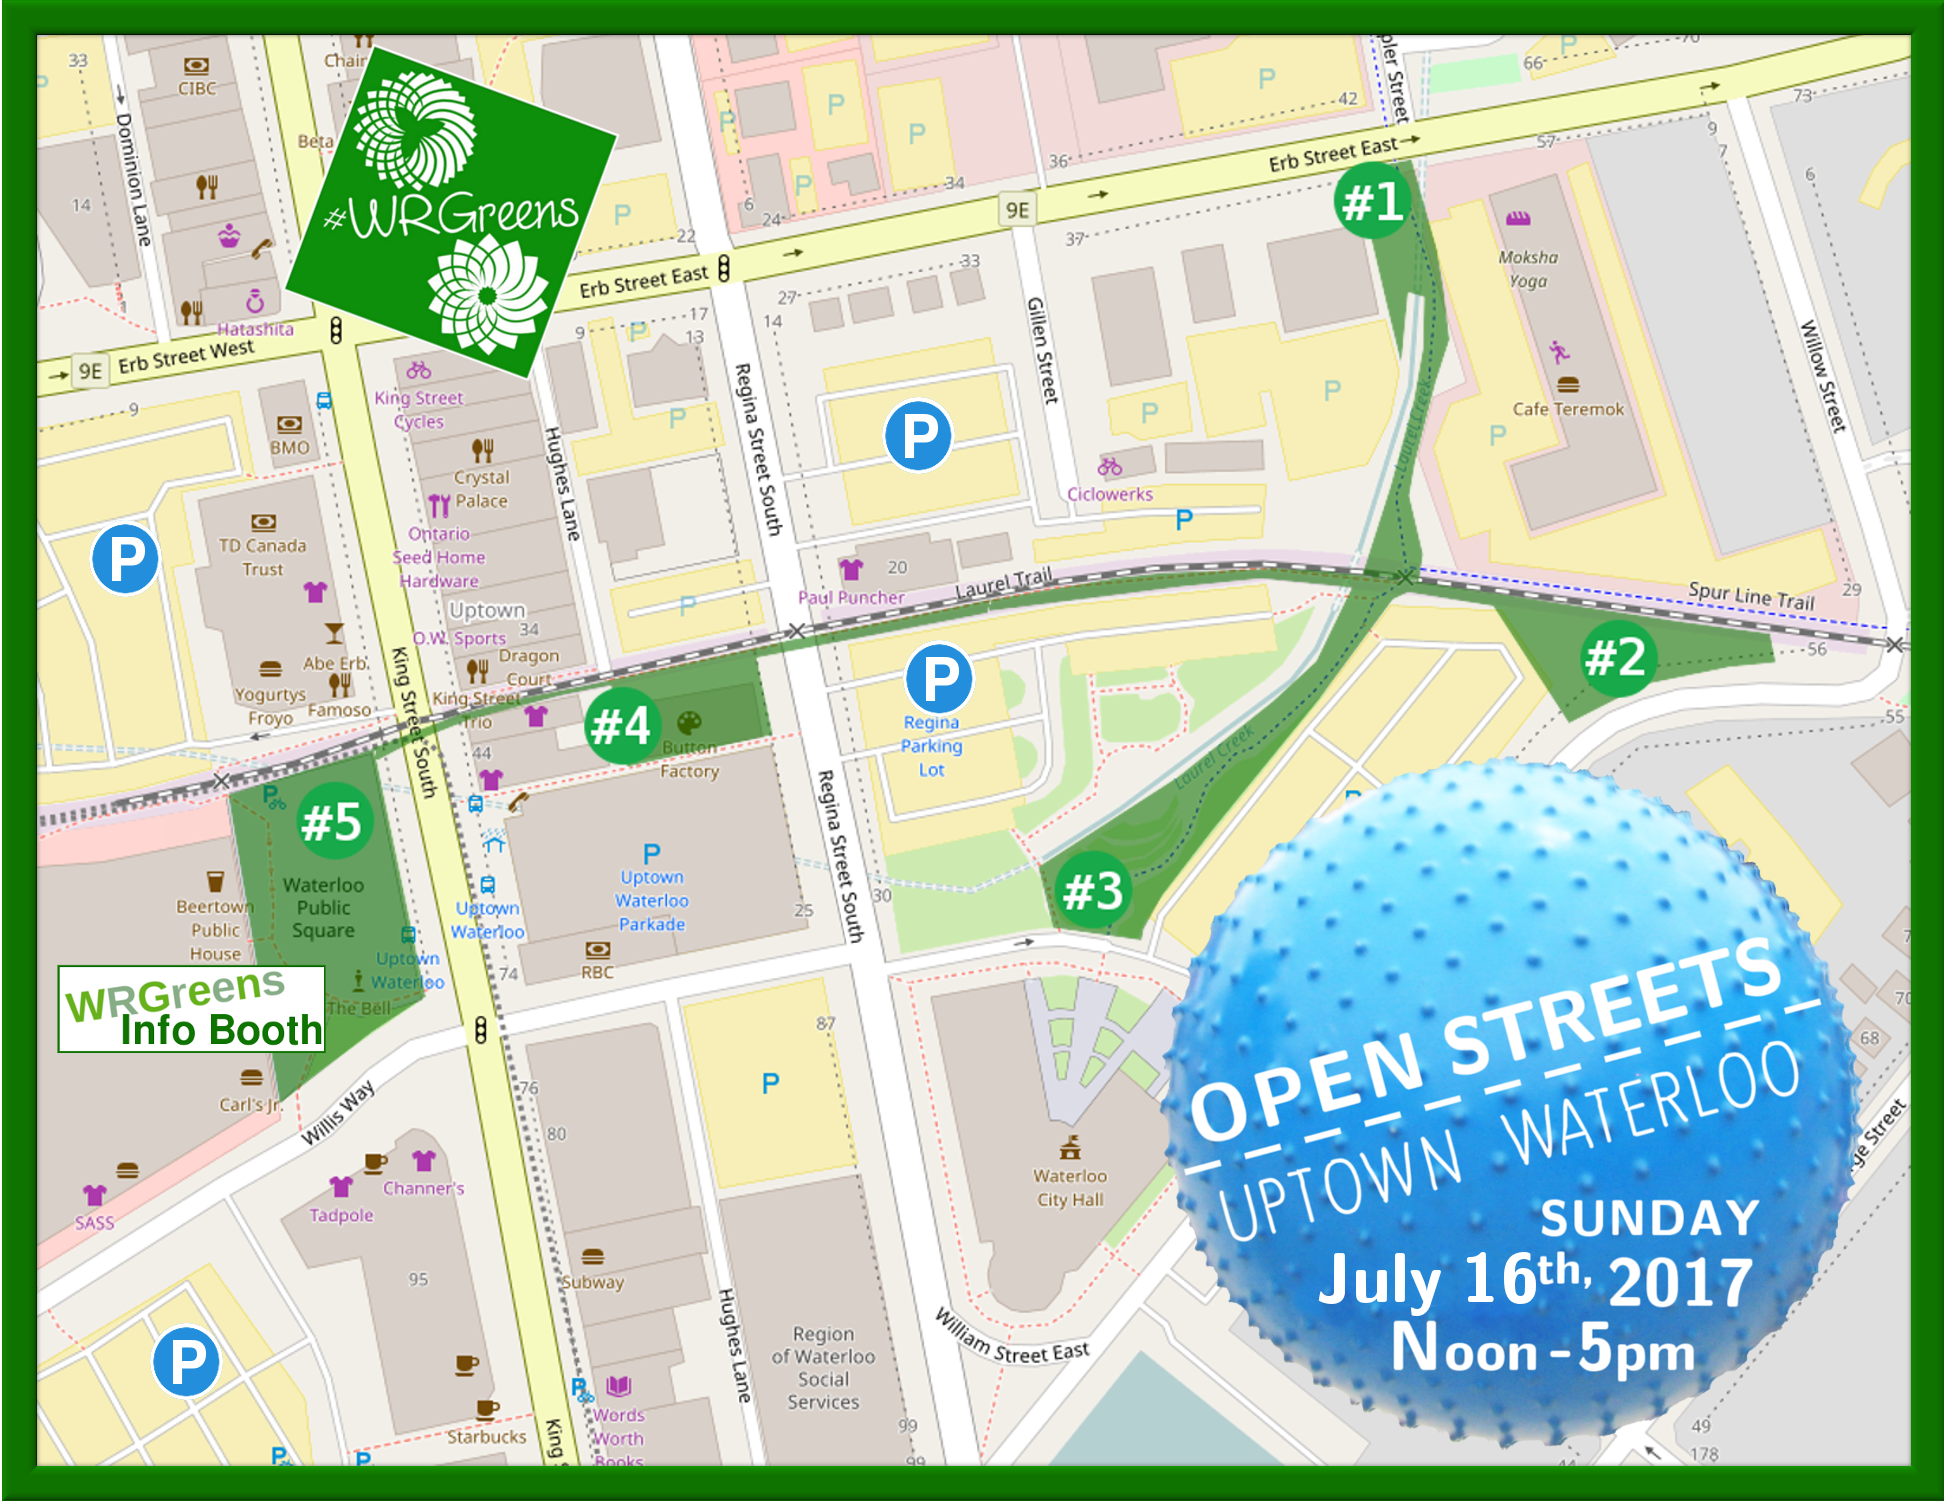 Open Streets Waterloo